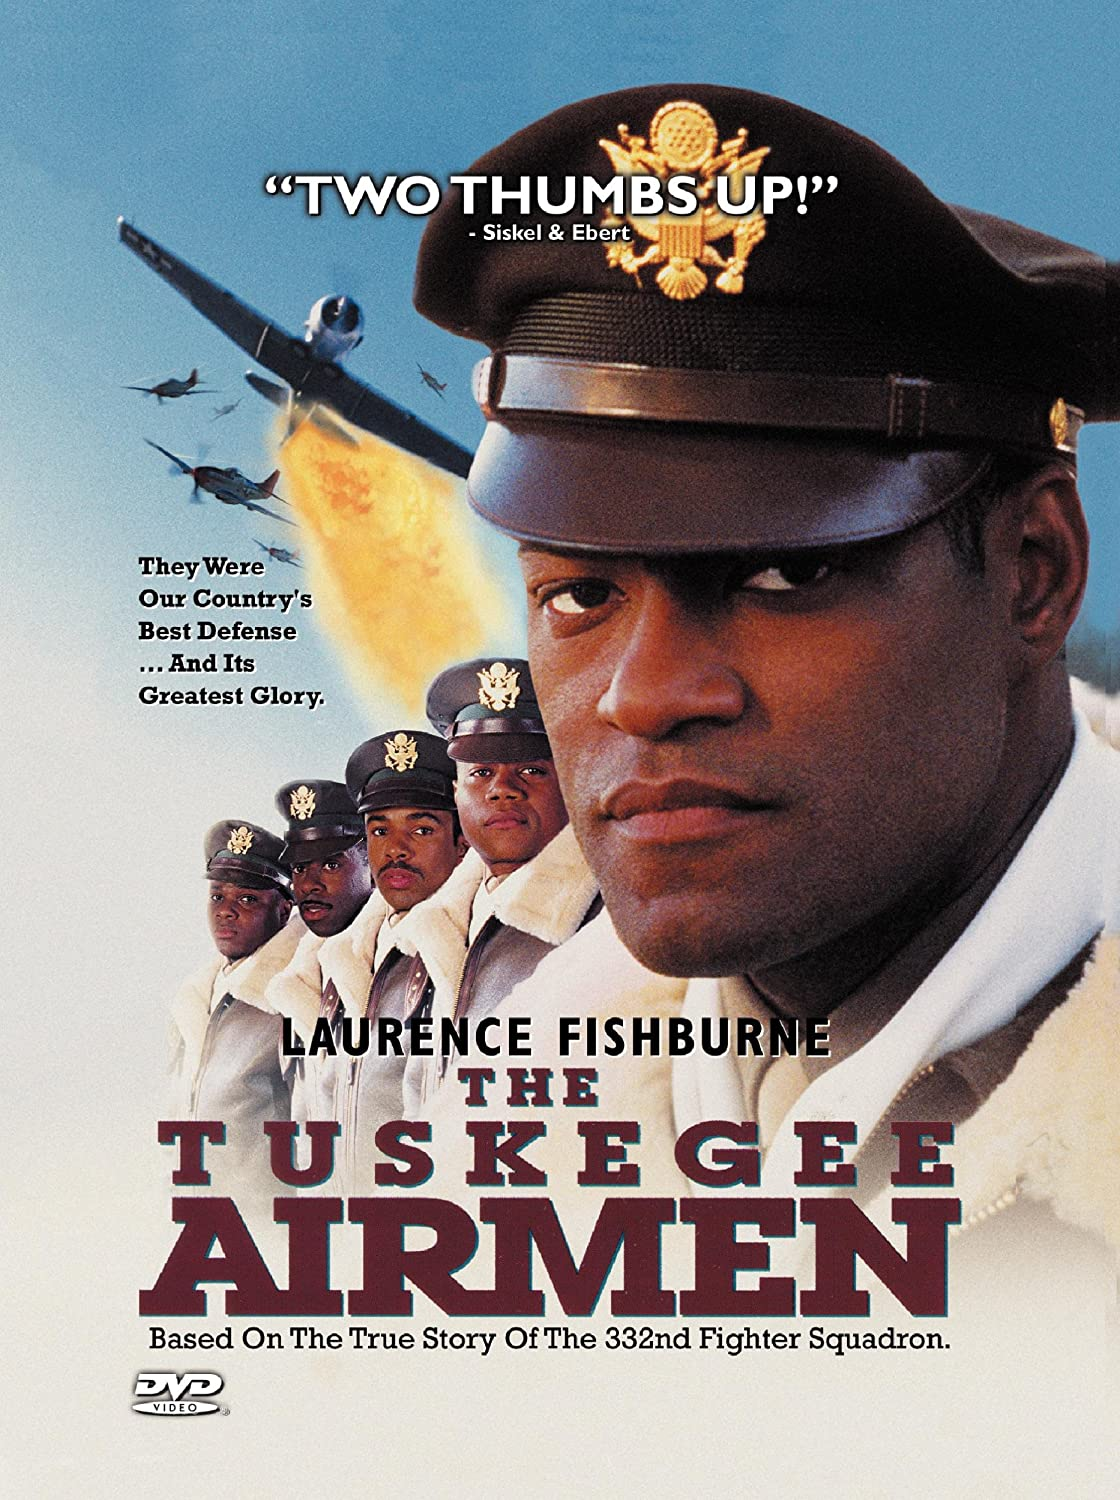 Amazon.com: The Tuskegee Airmen: Laurence Fishburne, Allen Payne, Malcolm-Jamal Warner, Courtney B. Vance, Andre Braugher, Christopher McDonald, ...